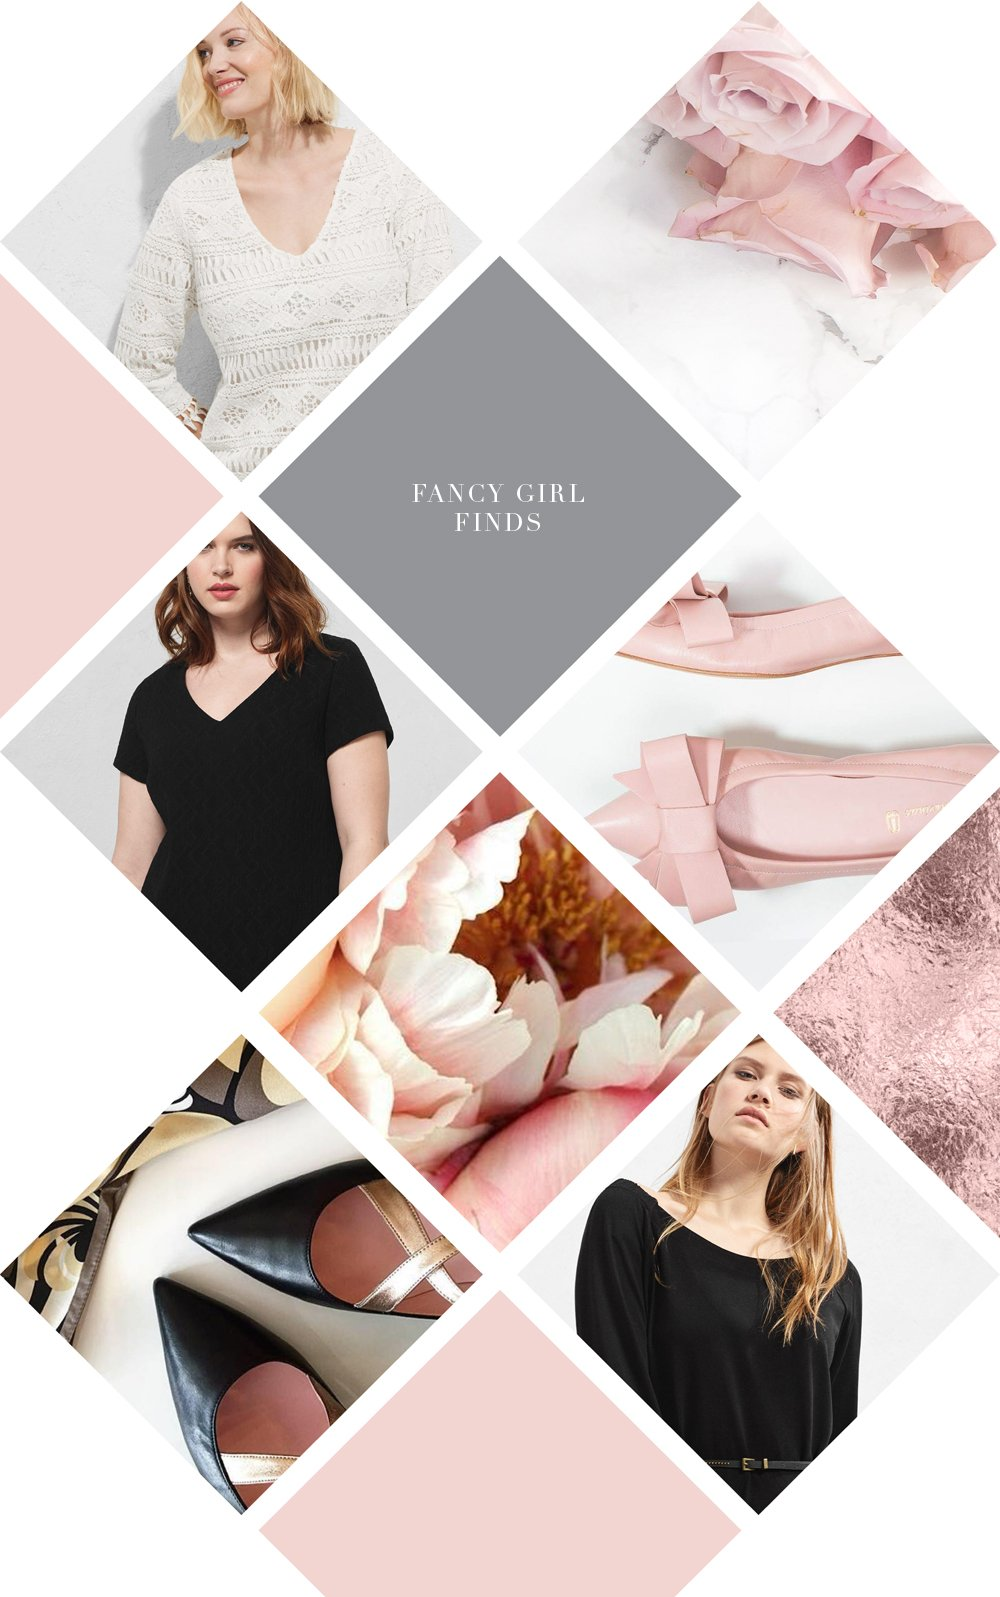 Shopping picks from Mango and Pretty Ballerinas. By Fancy Girl